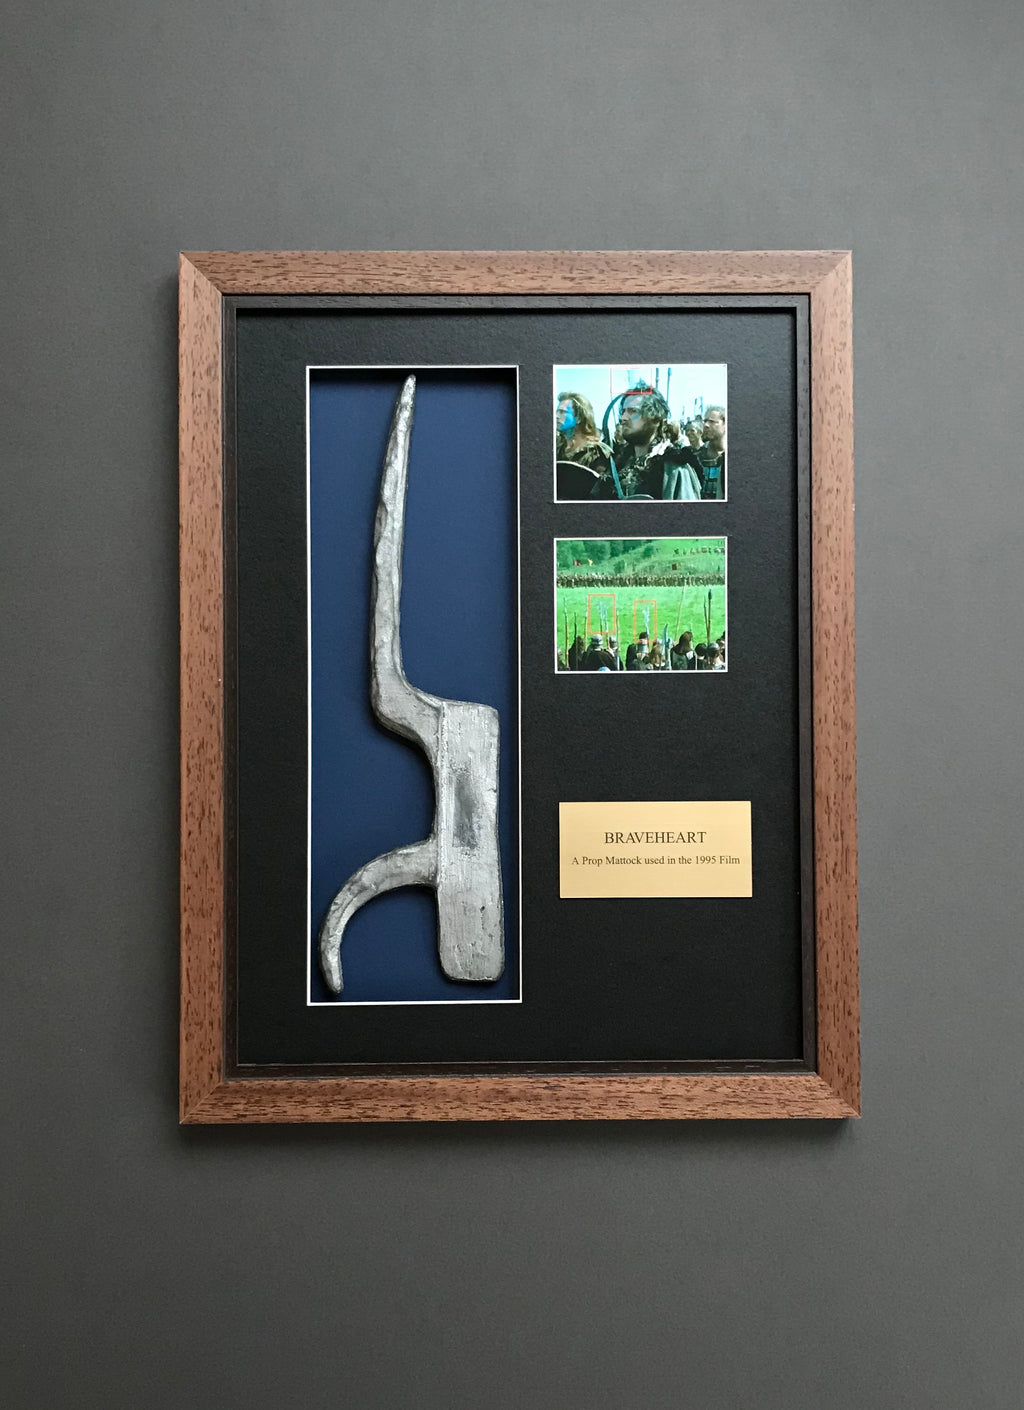 Braveheart (1995) - A Stunt Mattock used in the Film (SOLD)